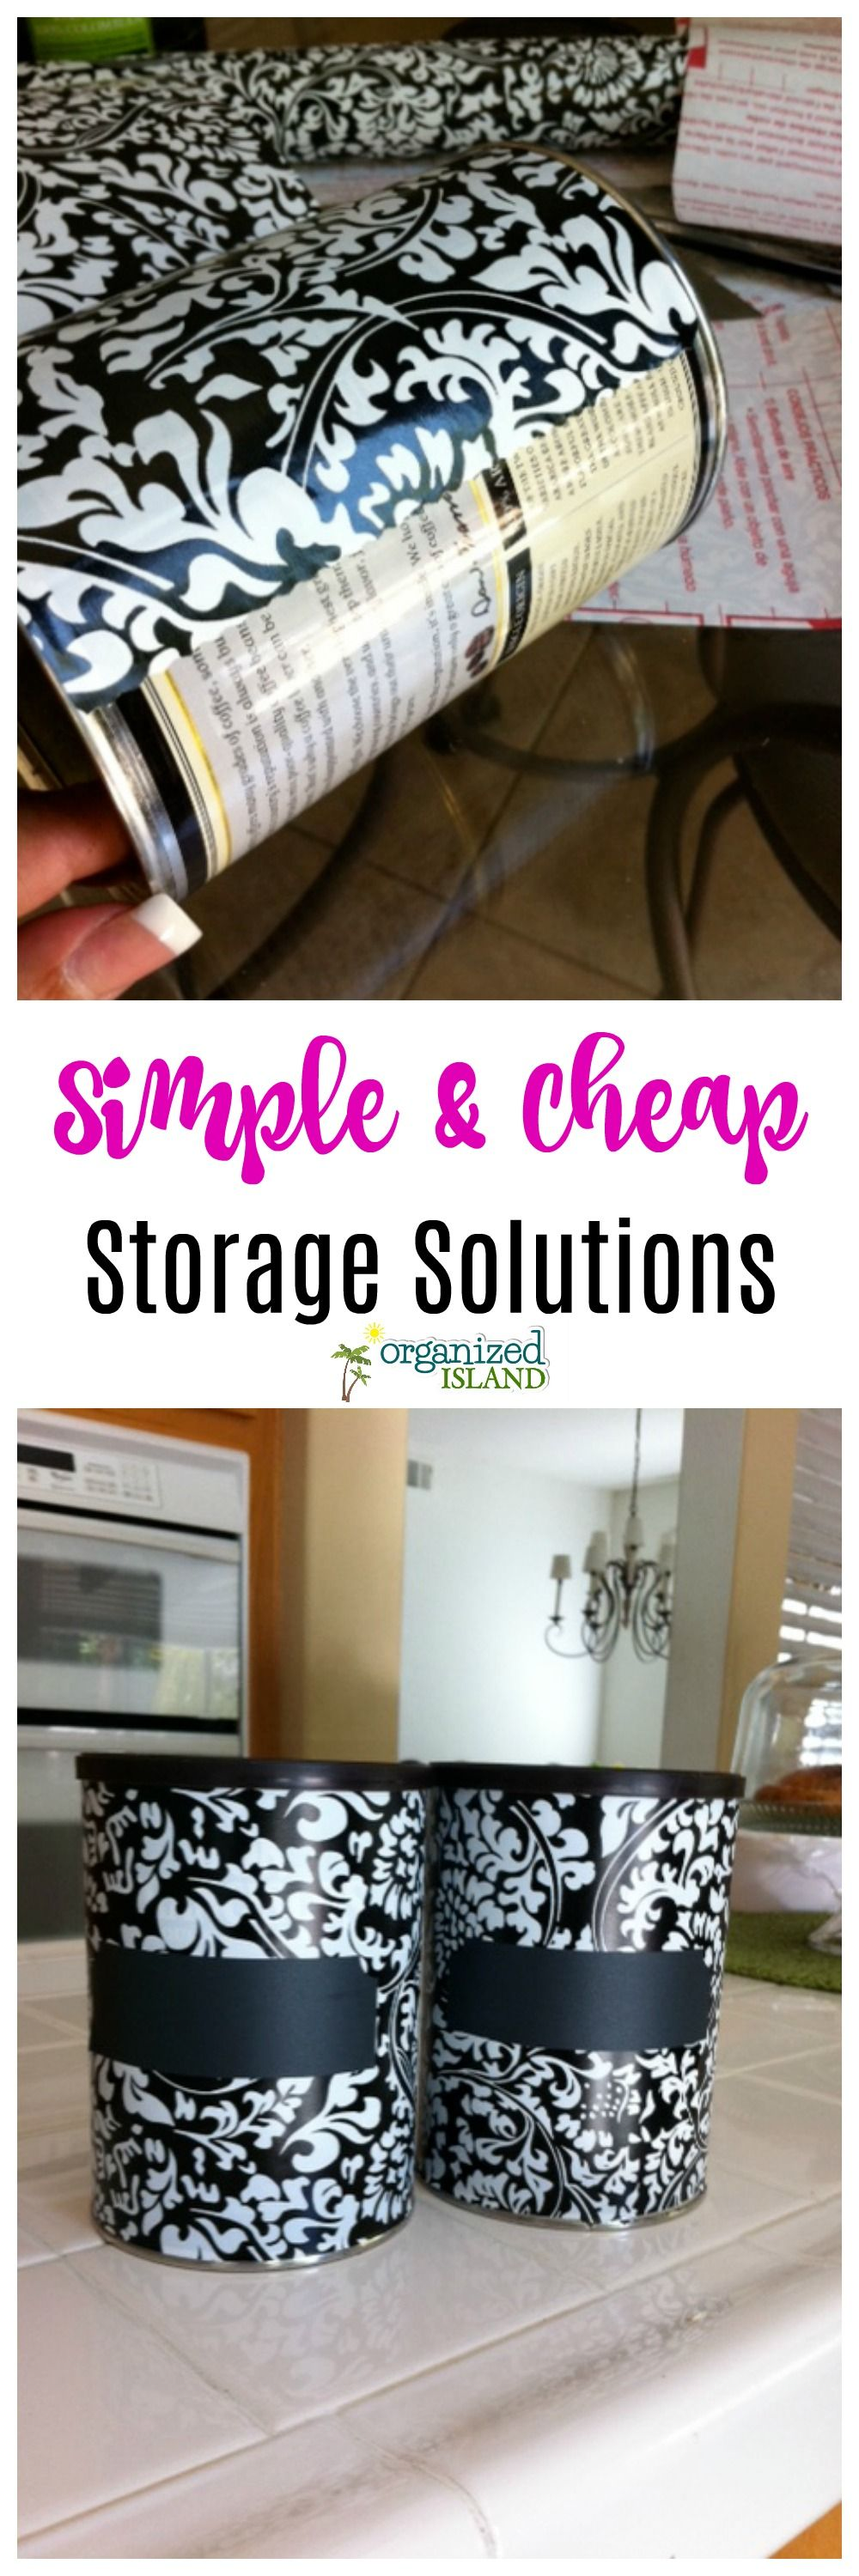 Cheap storage solutions - repurposed coffee cans are perfect for some many things! Easy DIY tutorial.    #DIY #repurpose #coffee #cans #cheap #storage #solutions